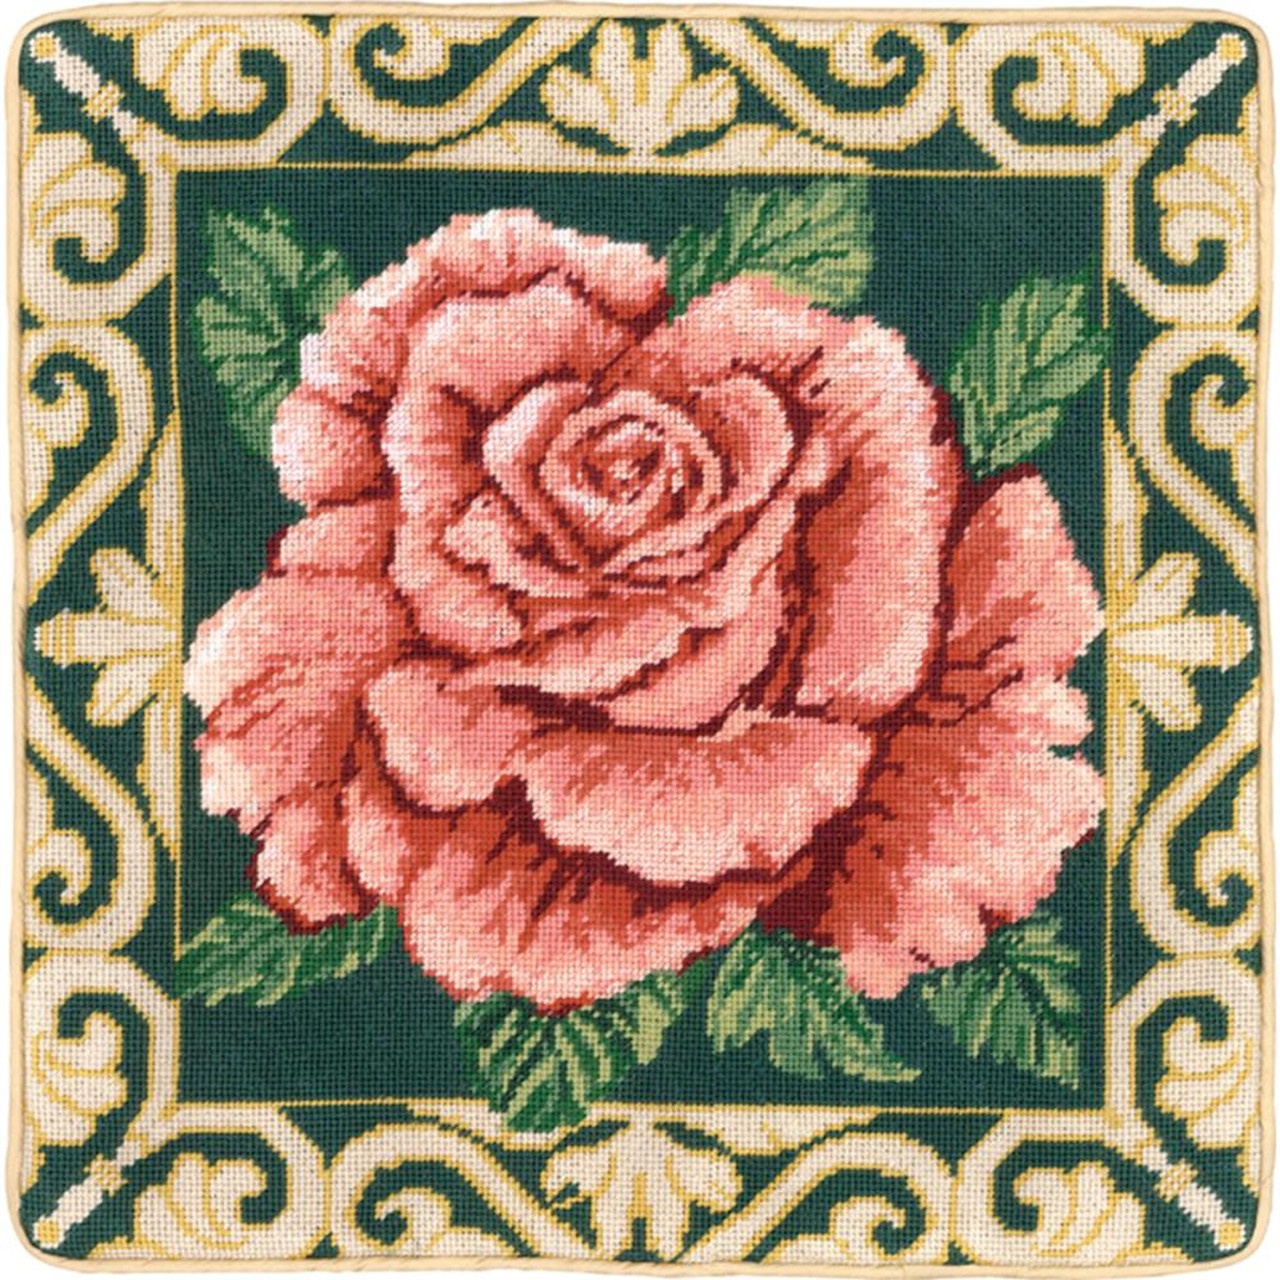 Candamar - Tradition Rose Pillow or Picture